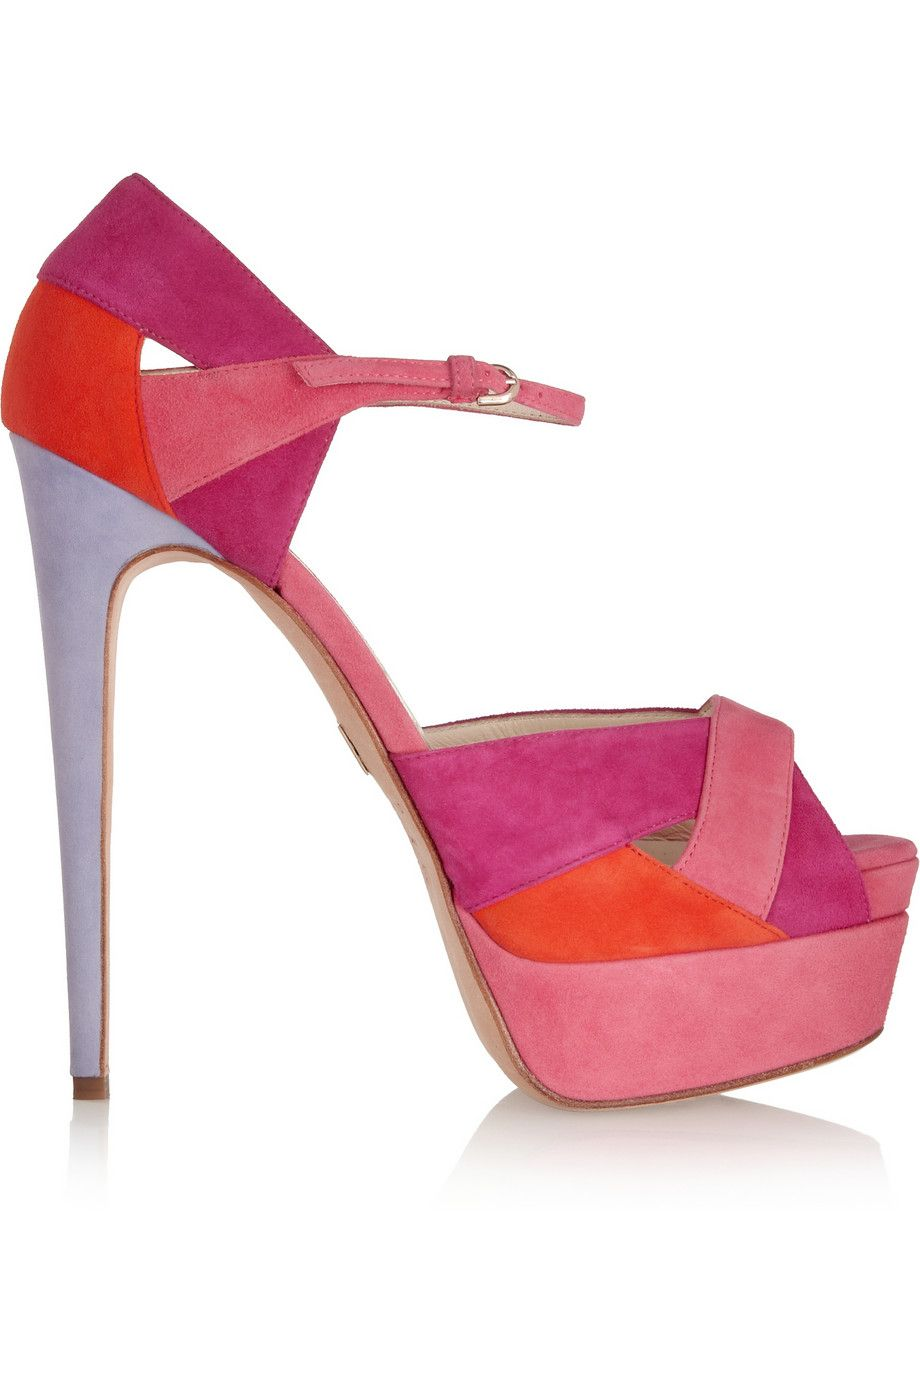 d2b245a11eca Brian Atwood Aida Colorblock Suede Sandals in Pink